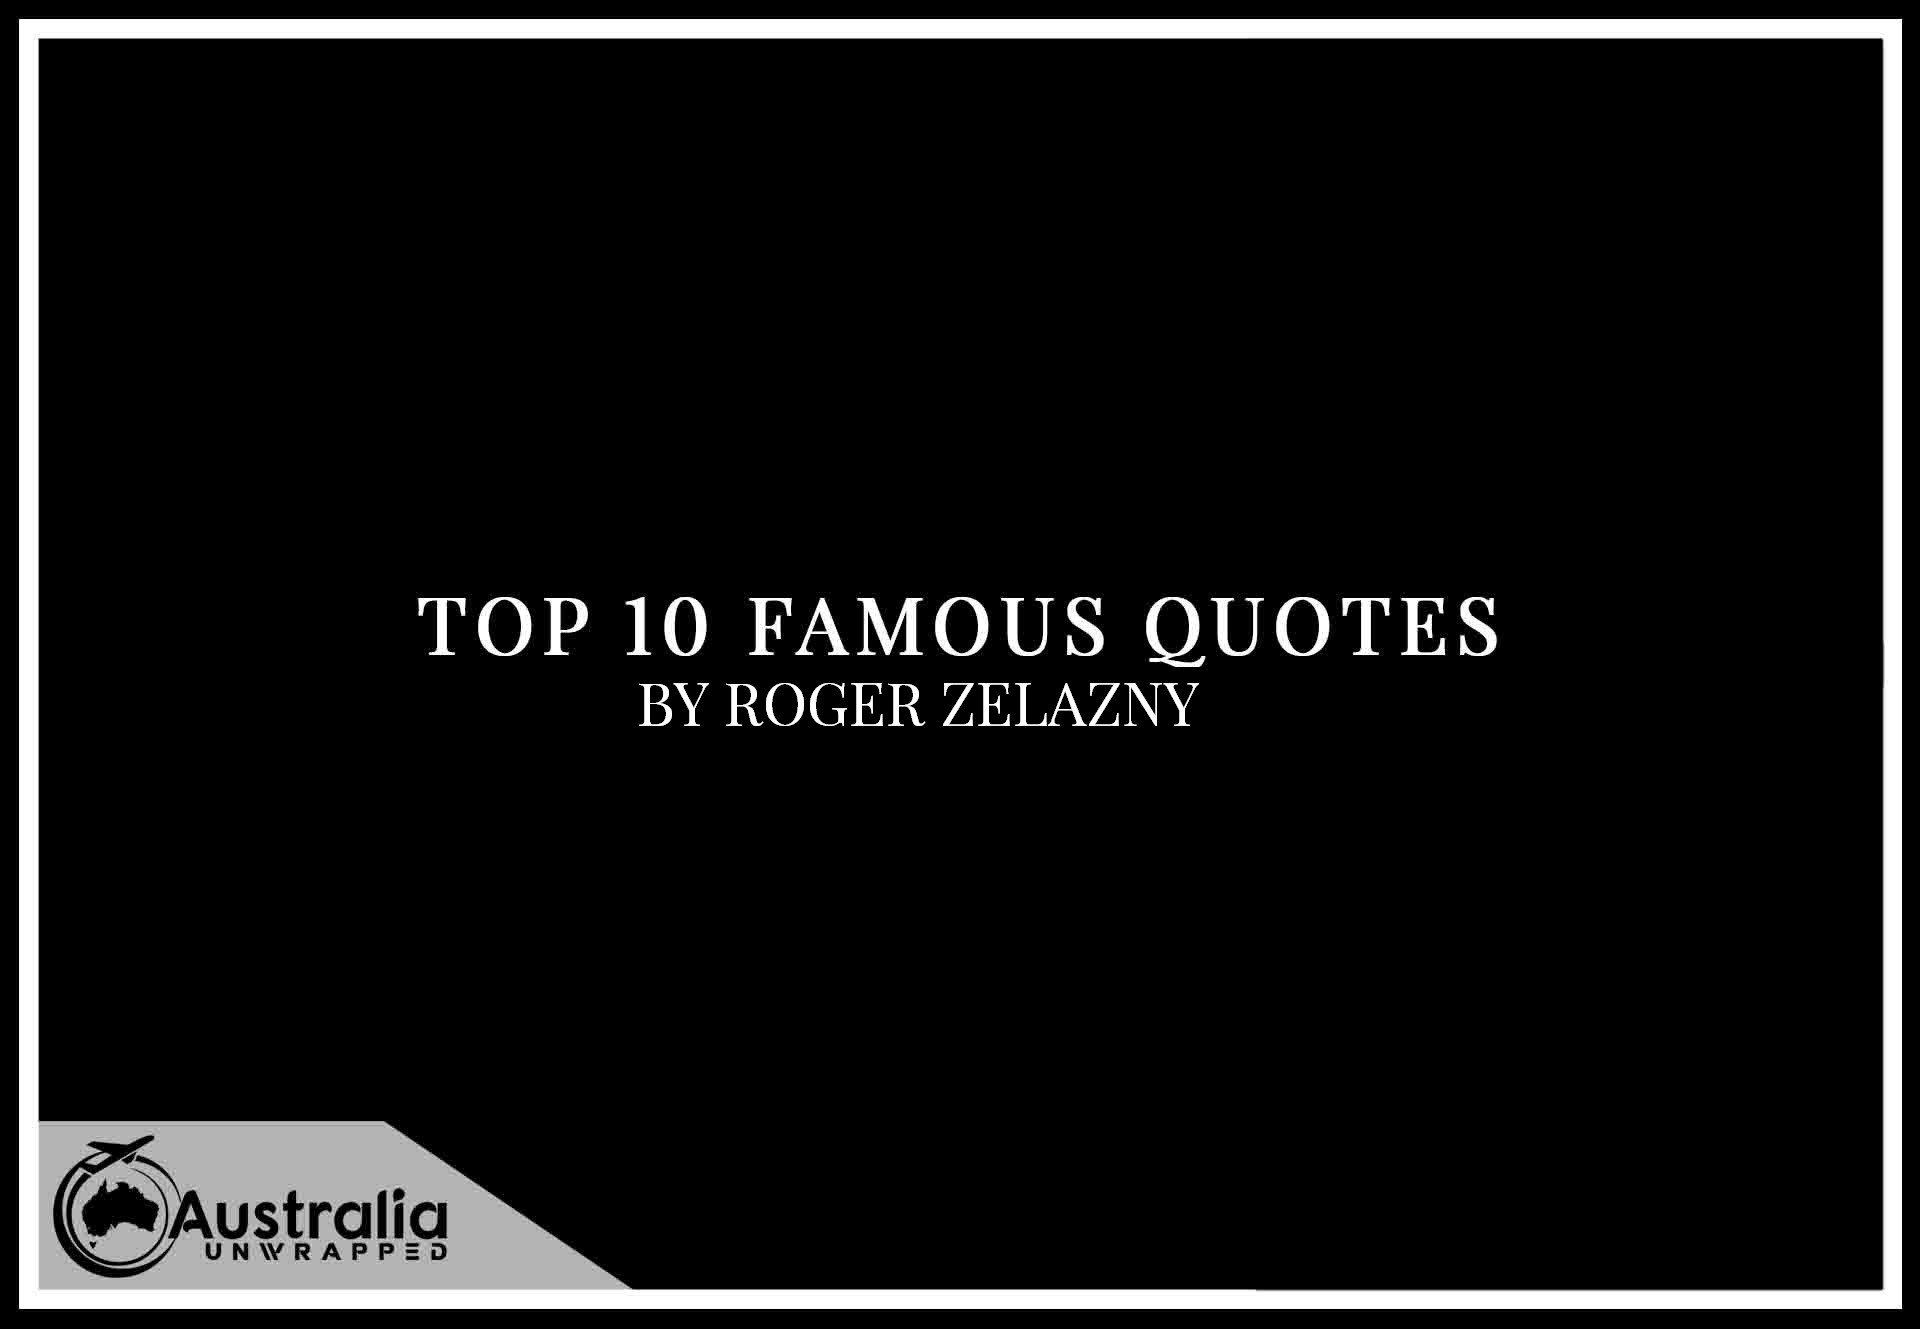 Top 10 Famous Quotes by Author Roger Zelazny